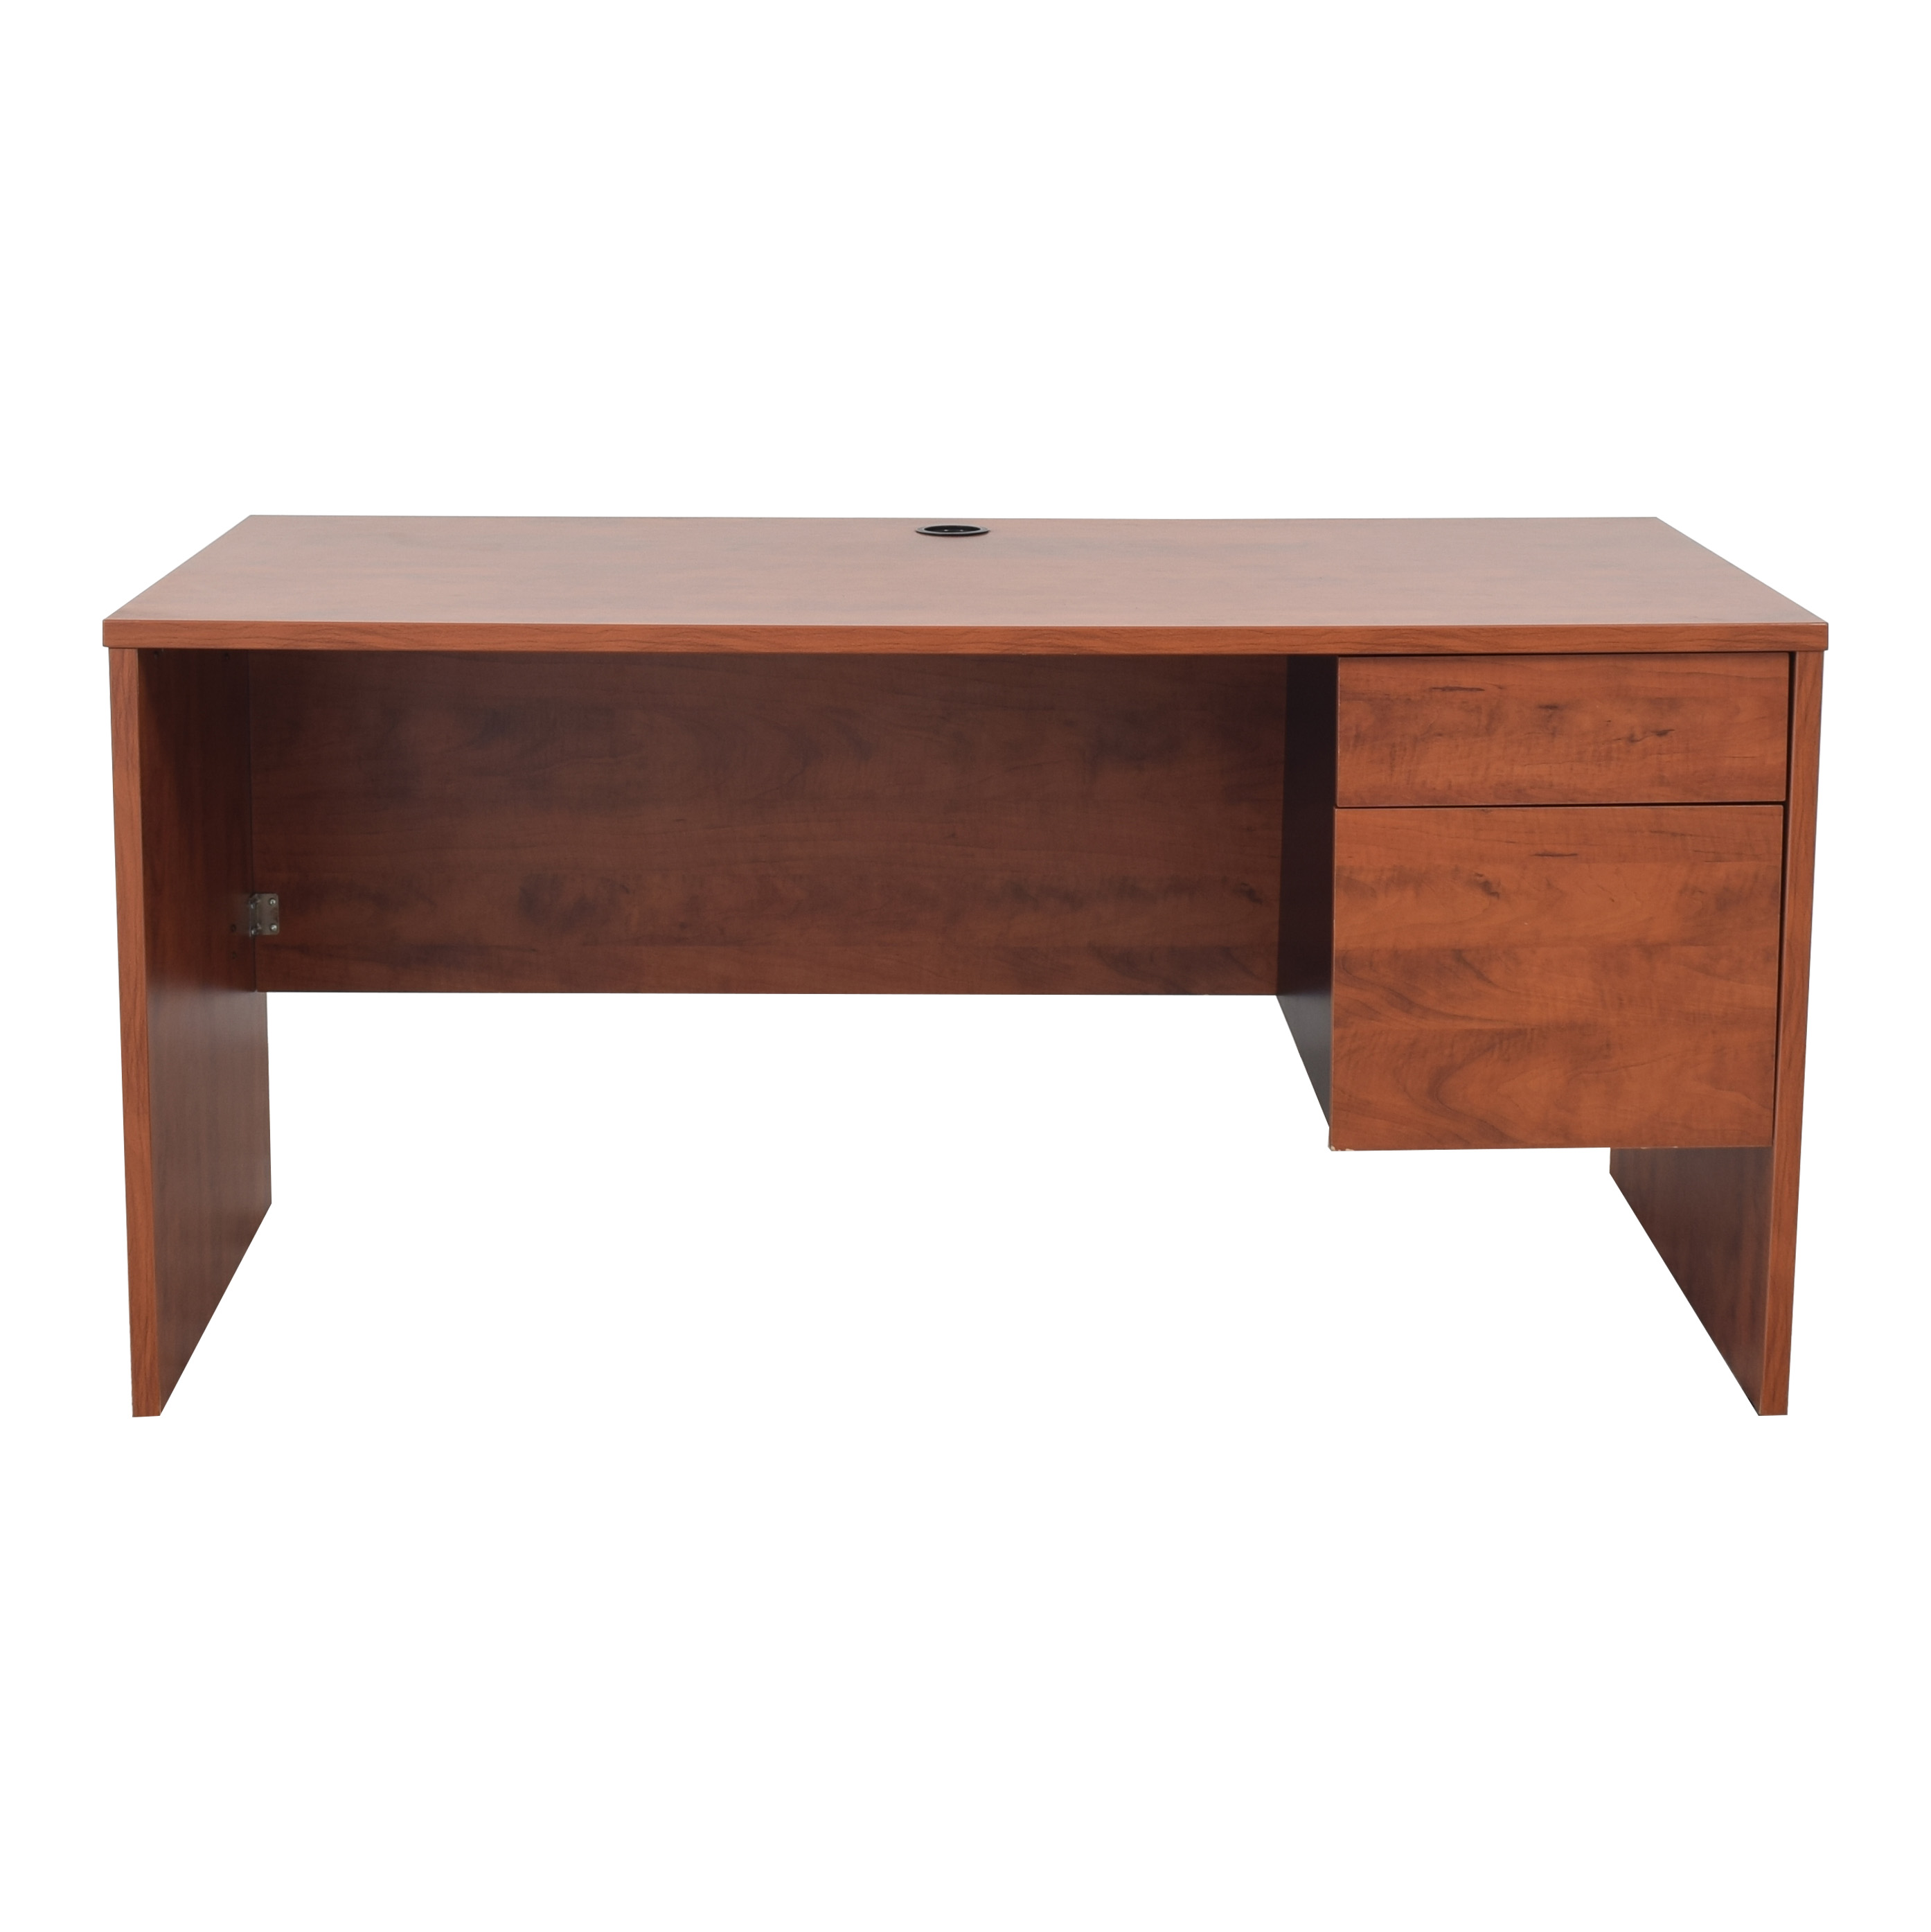 Glenwood Glenwood Desk with Two Drawers dimensions